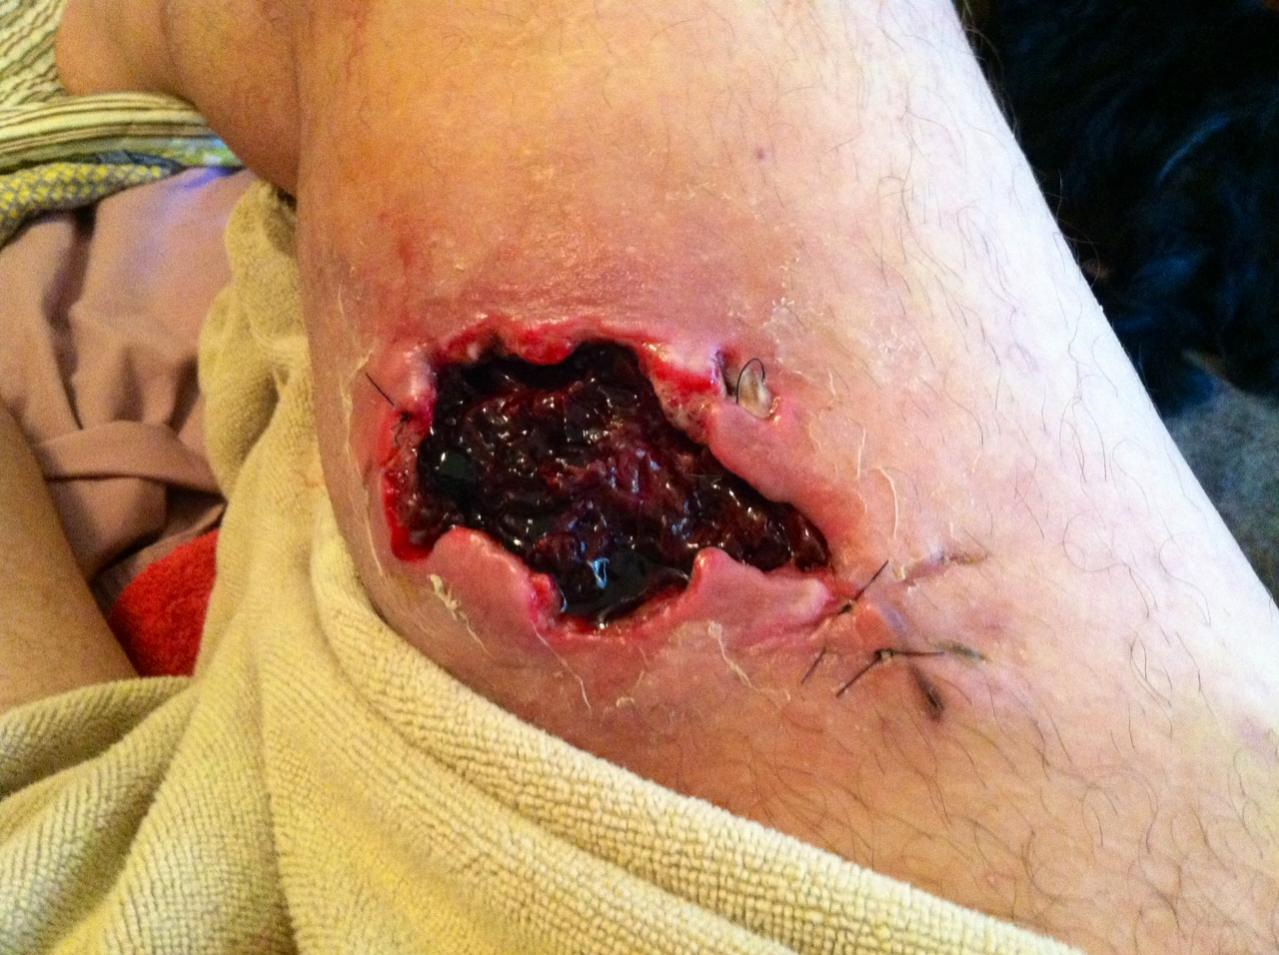 357 SIG wound effects - Warning: GRAPHIC